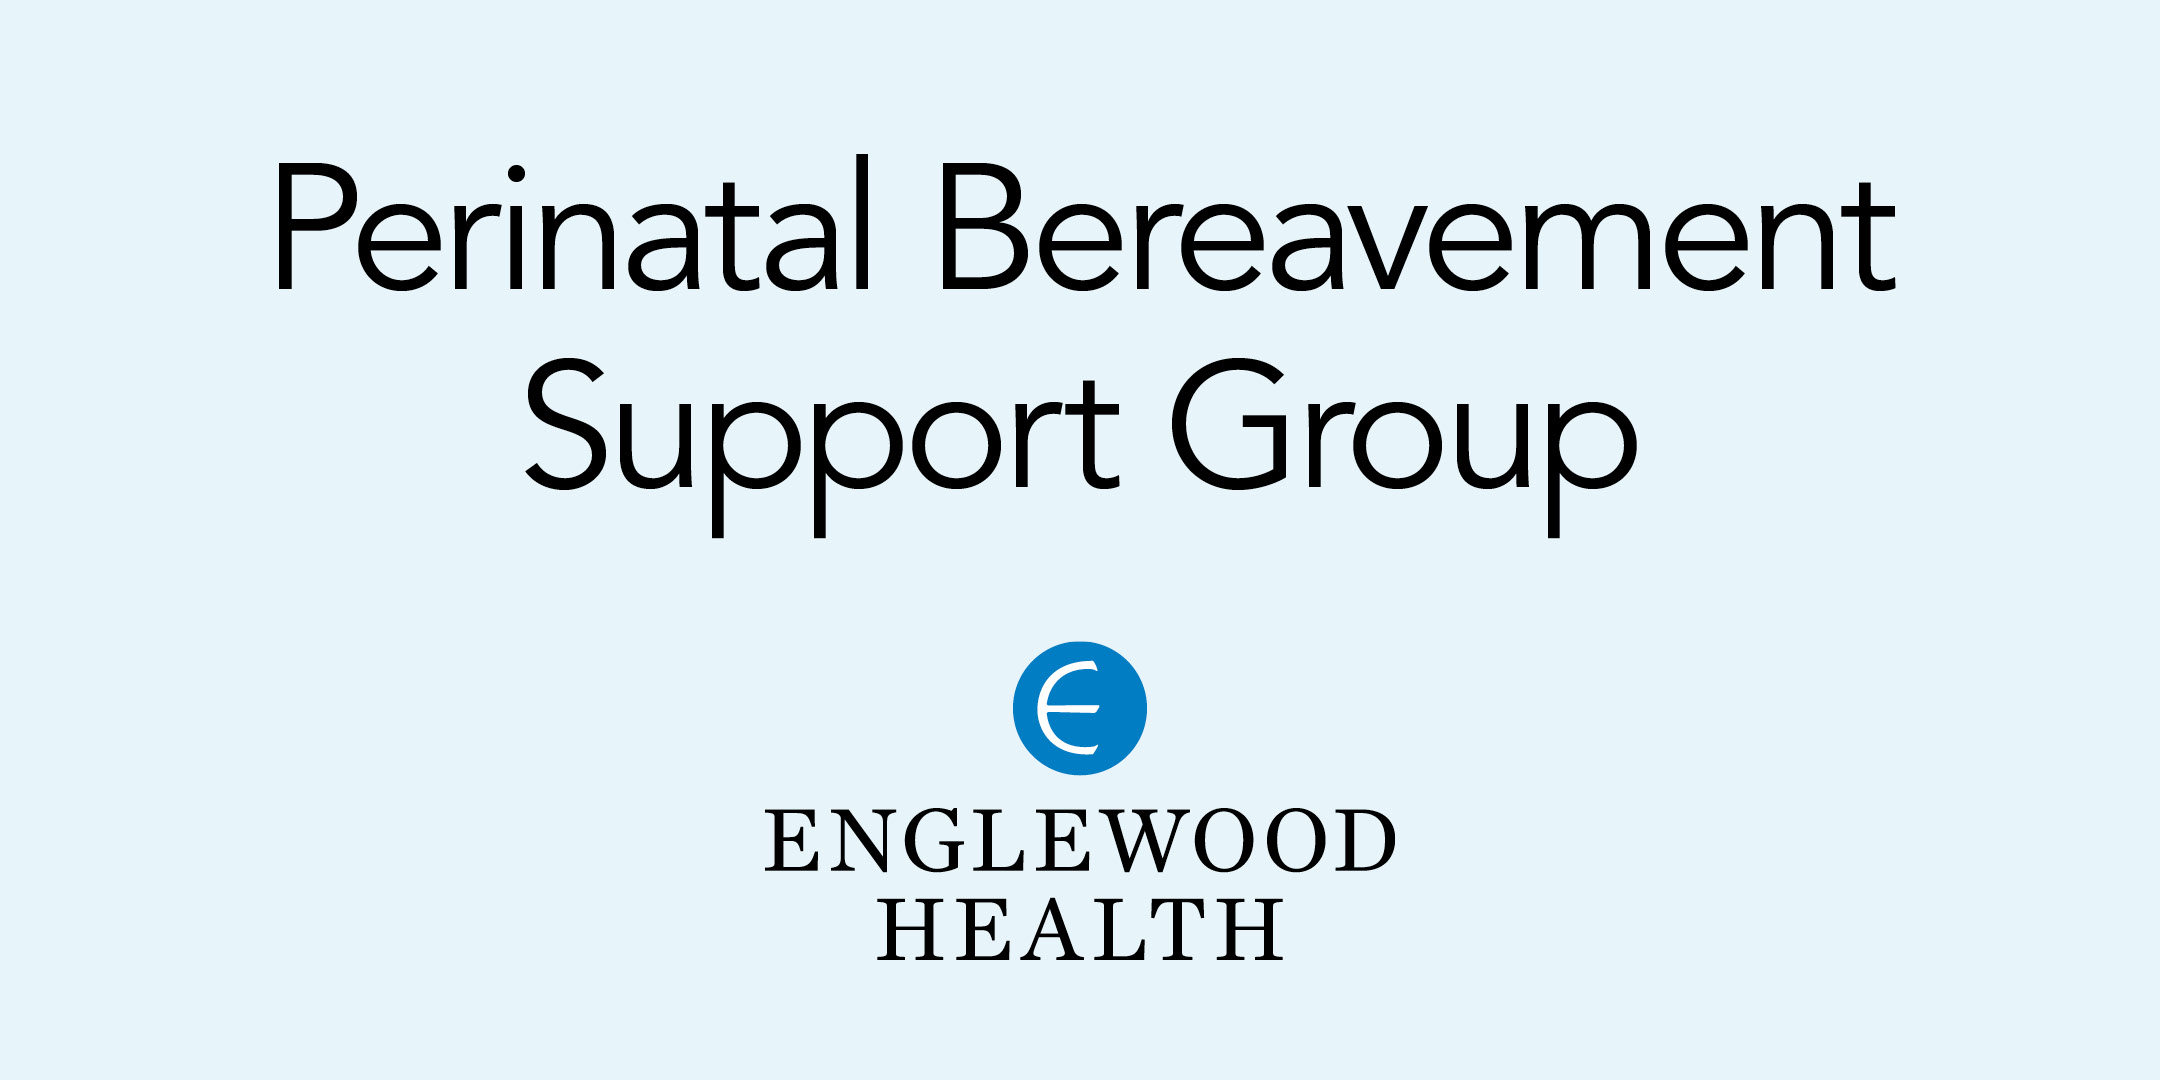 Perinatal Bereavement Support Group